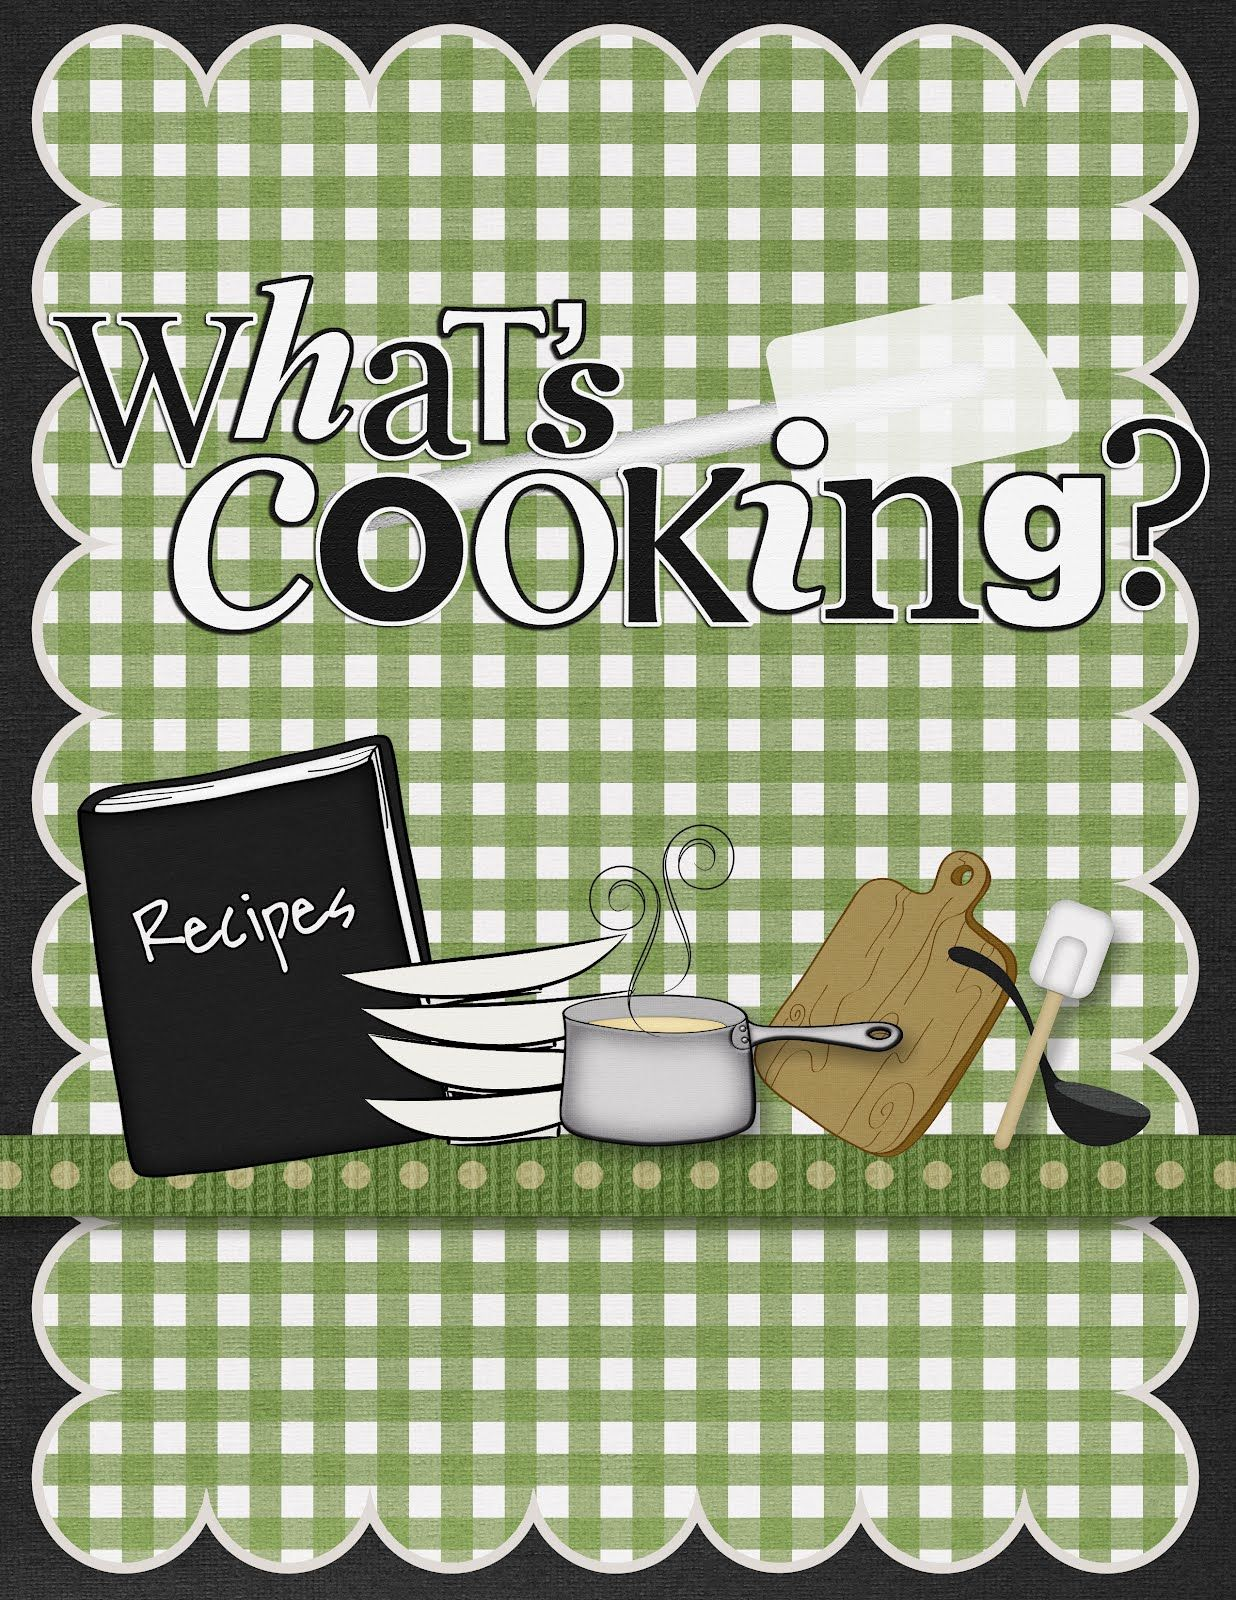 Hilaire image in printable recipe book cover